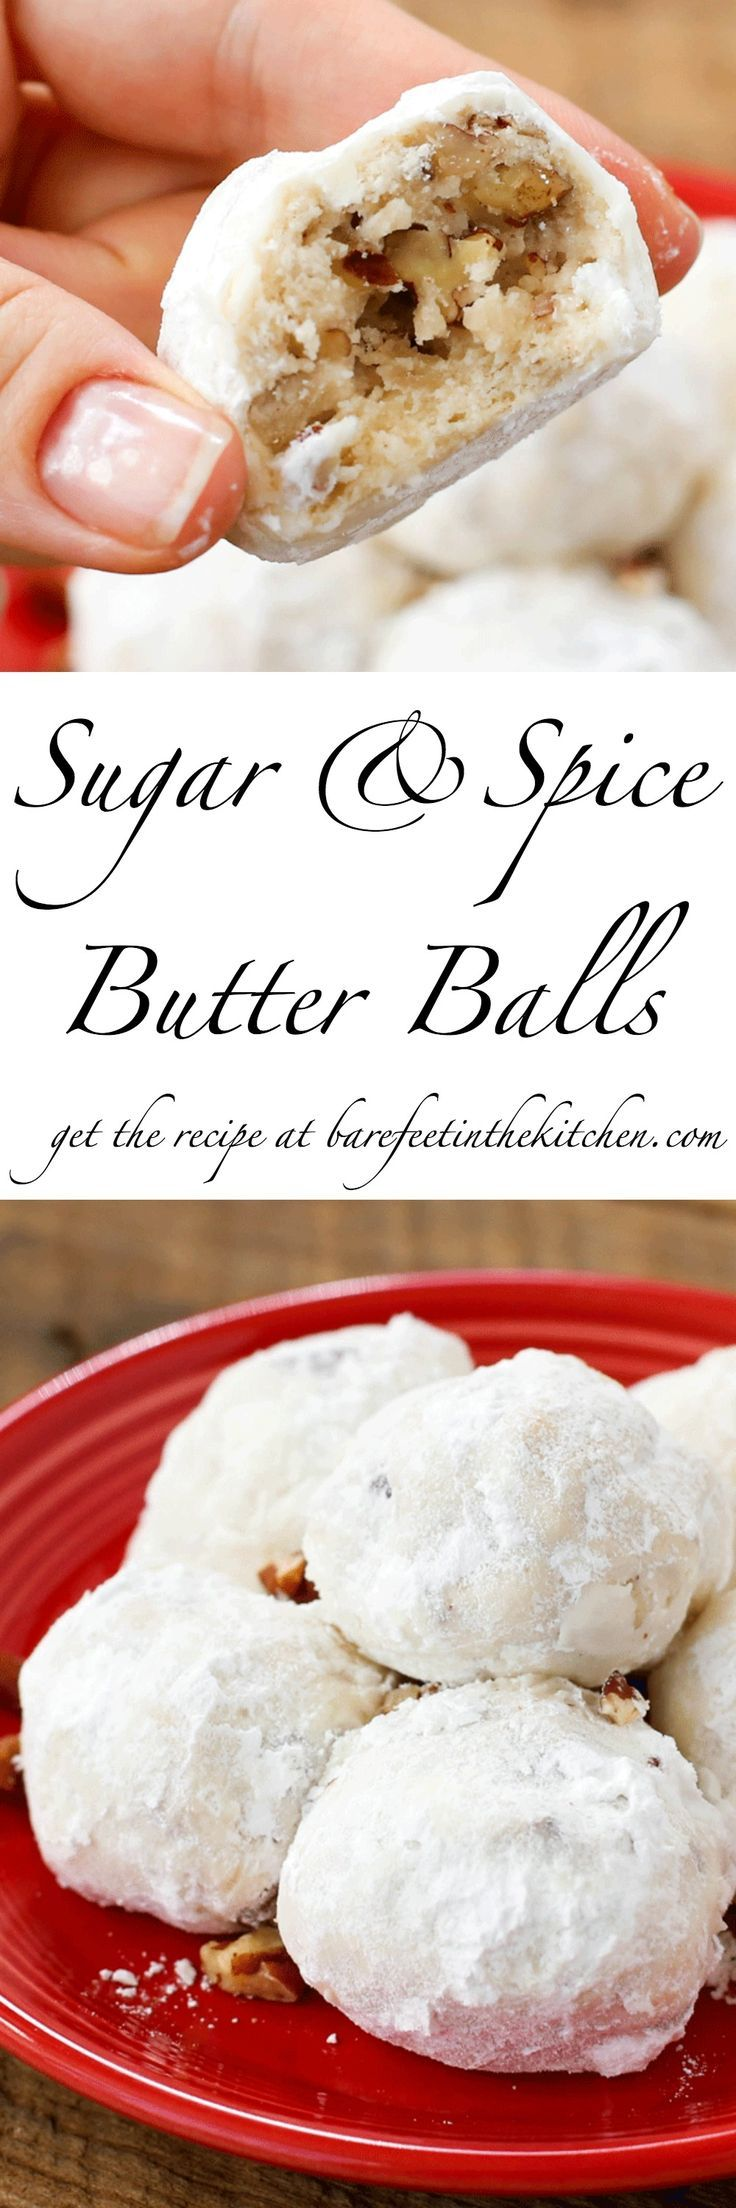 Traditional Mexican Wedding Cookies are transformed into these irresistible Sugar and Spice Butter Balls!